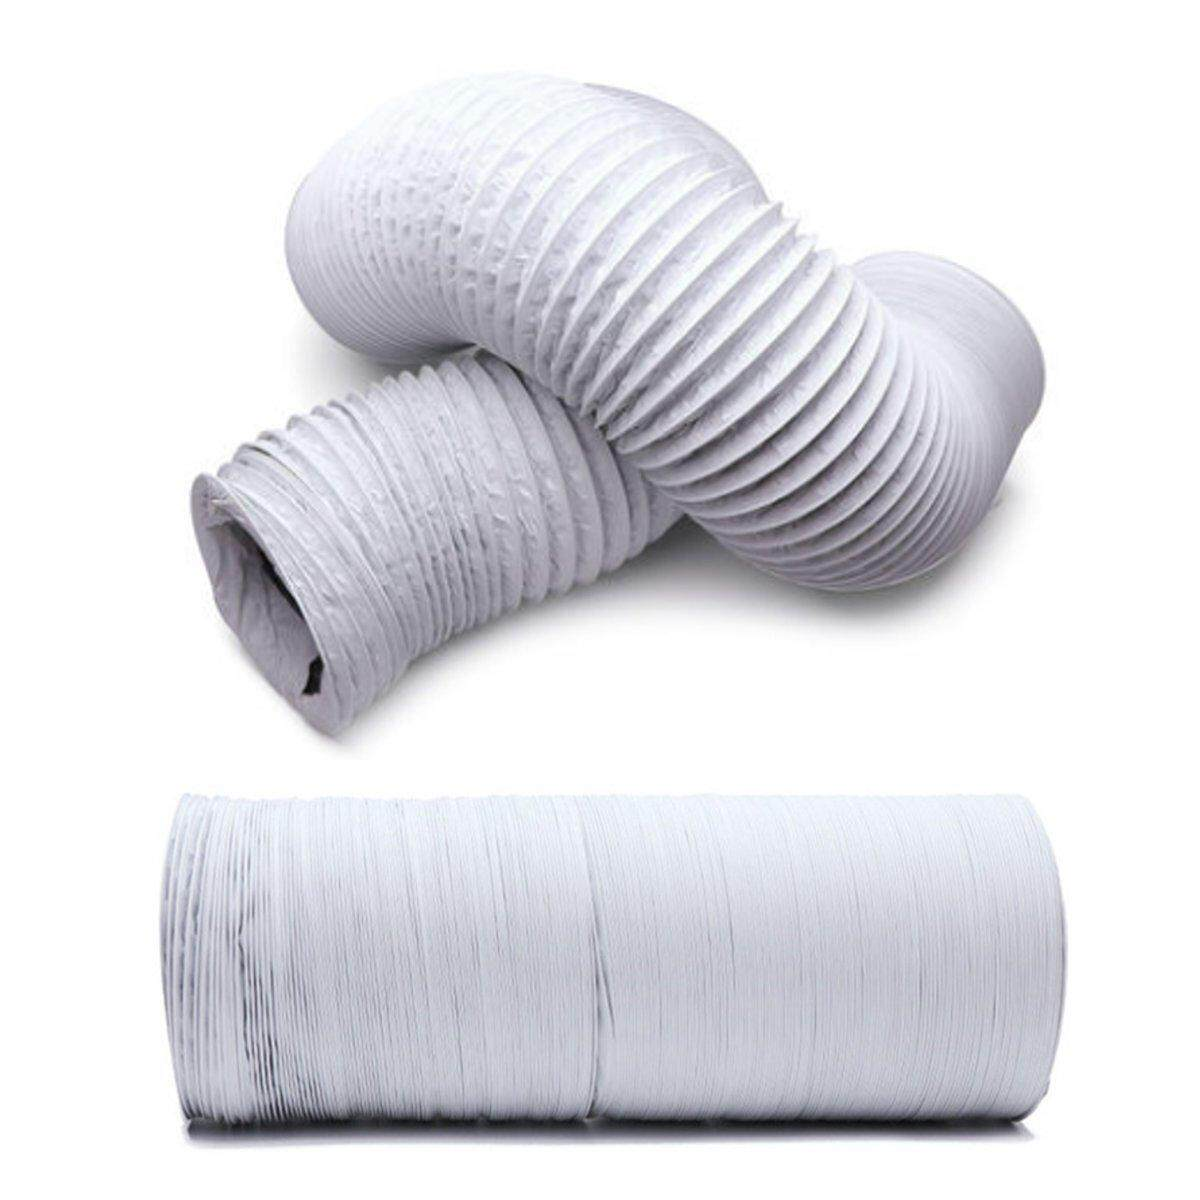 7m Flexible Air Conditioner Spare Parts Exhaust Pipe Vent Hose Outlet 225mm By Glimmer.